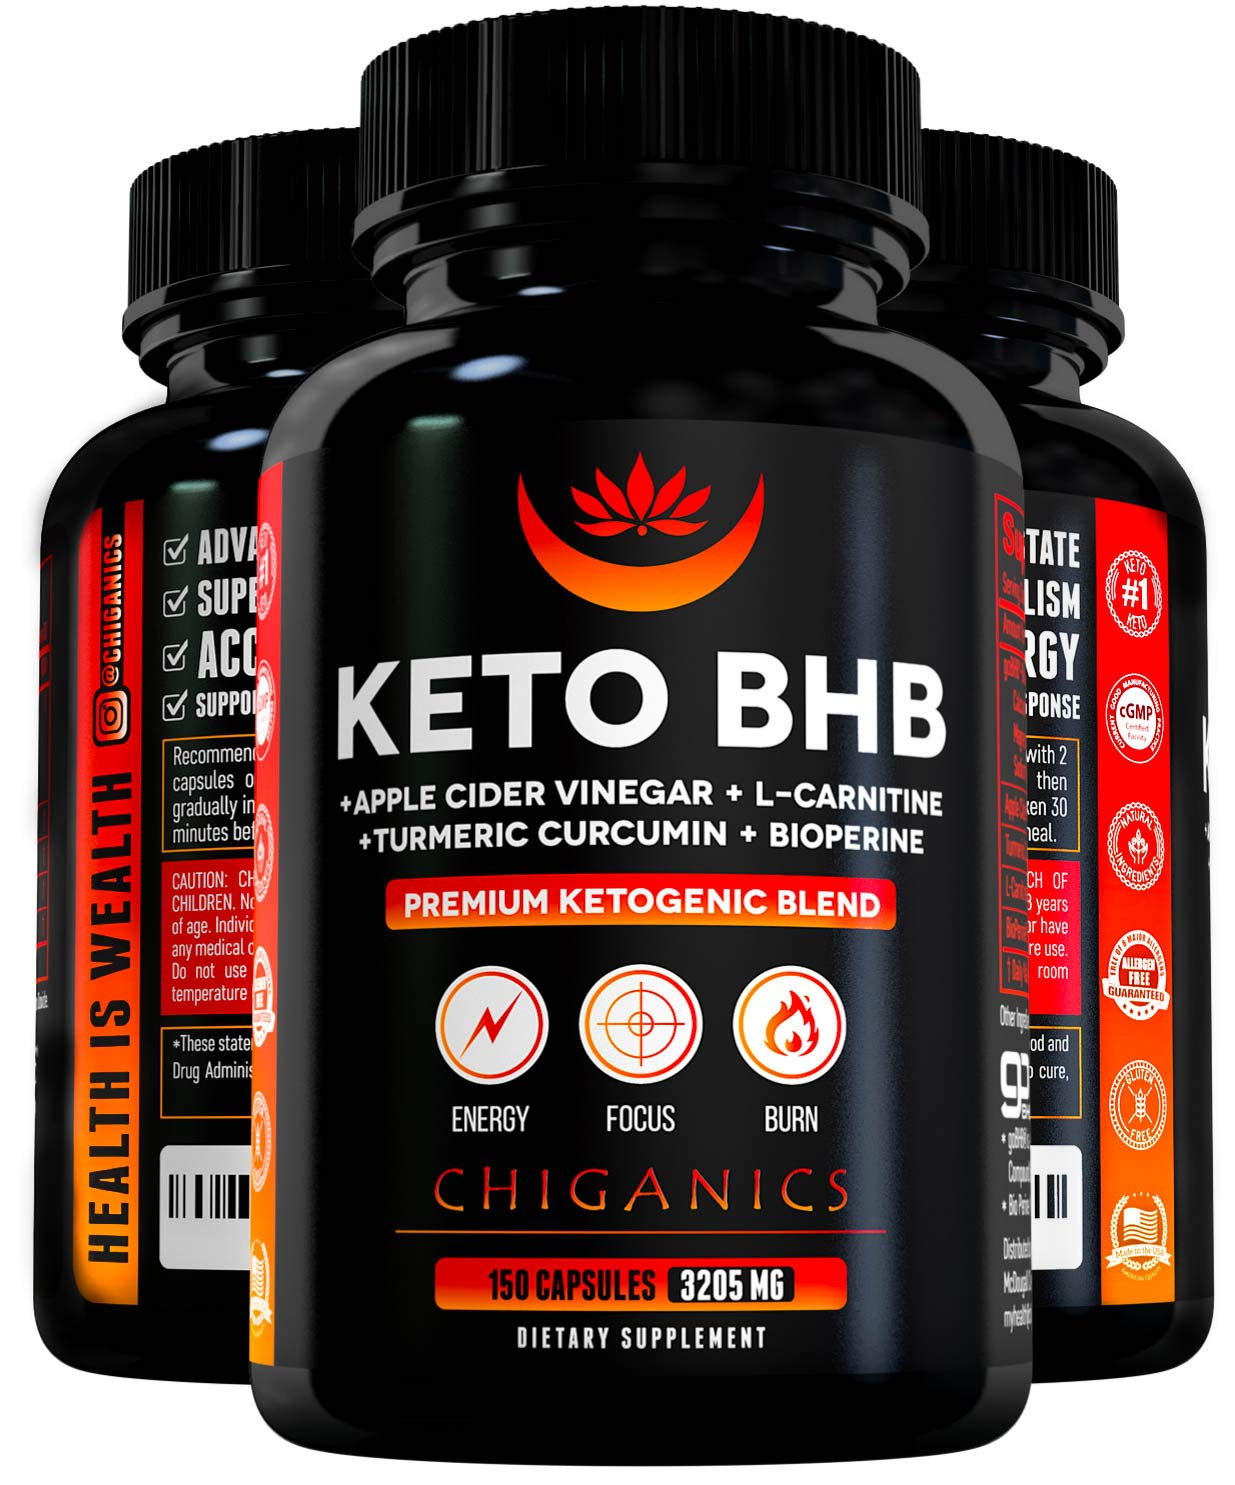 Powerful BHB Keto Pills Weight Loss 3200mg- Apple Cider Vinegar Capsules Turmeric Curcumin L-Carnitine -Boost Energy Metabolism- Keto Fat Burner Pills BHB Exogenous Ketones – Keto Diet Pills